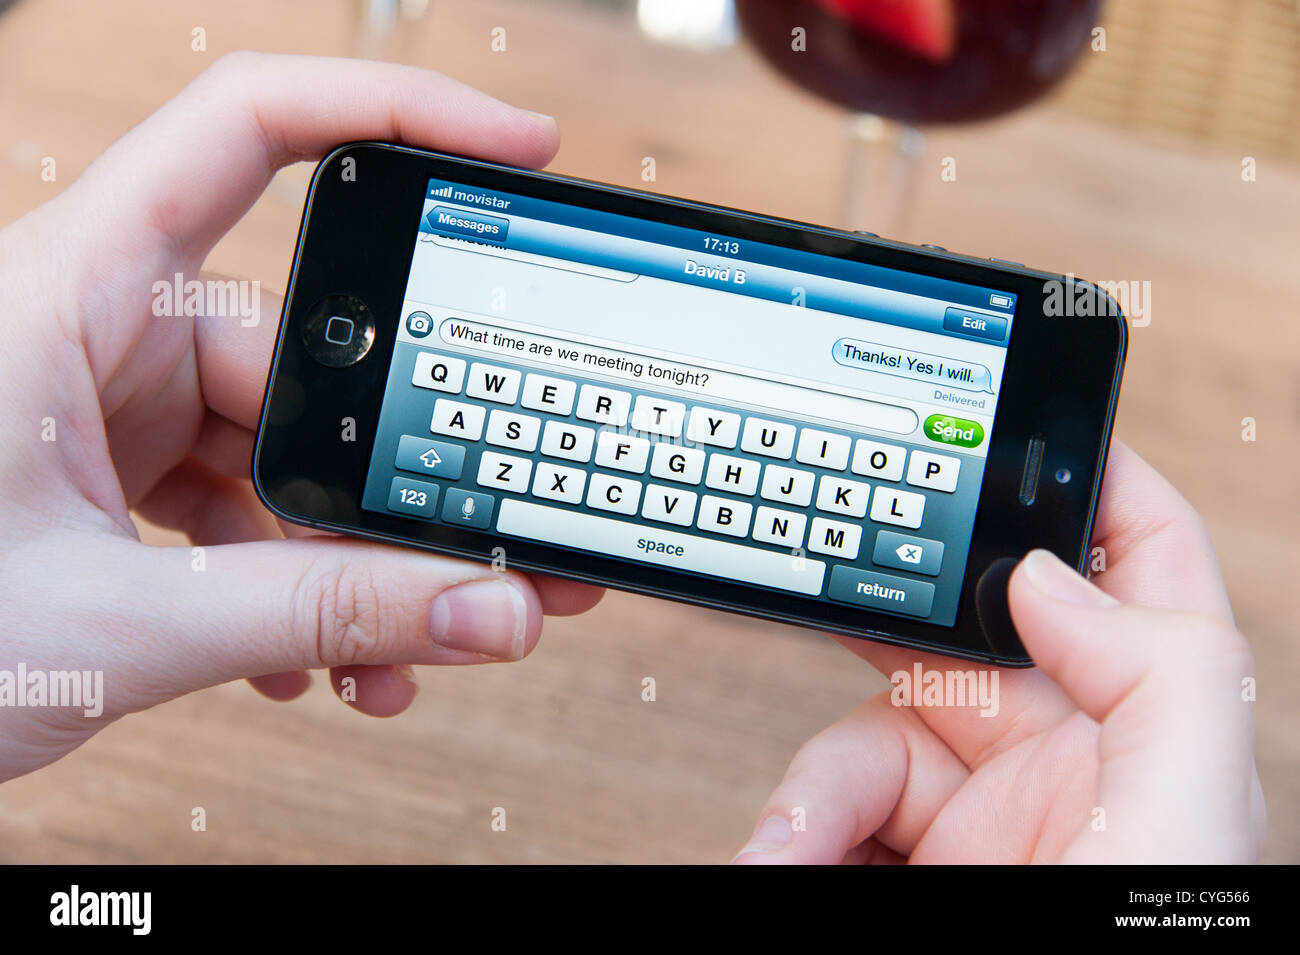 Sending SMS text message on Apple iPhone 5 - Stock Image